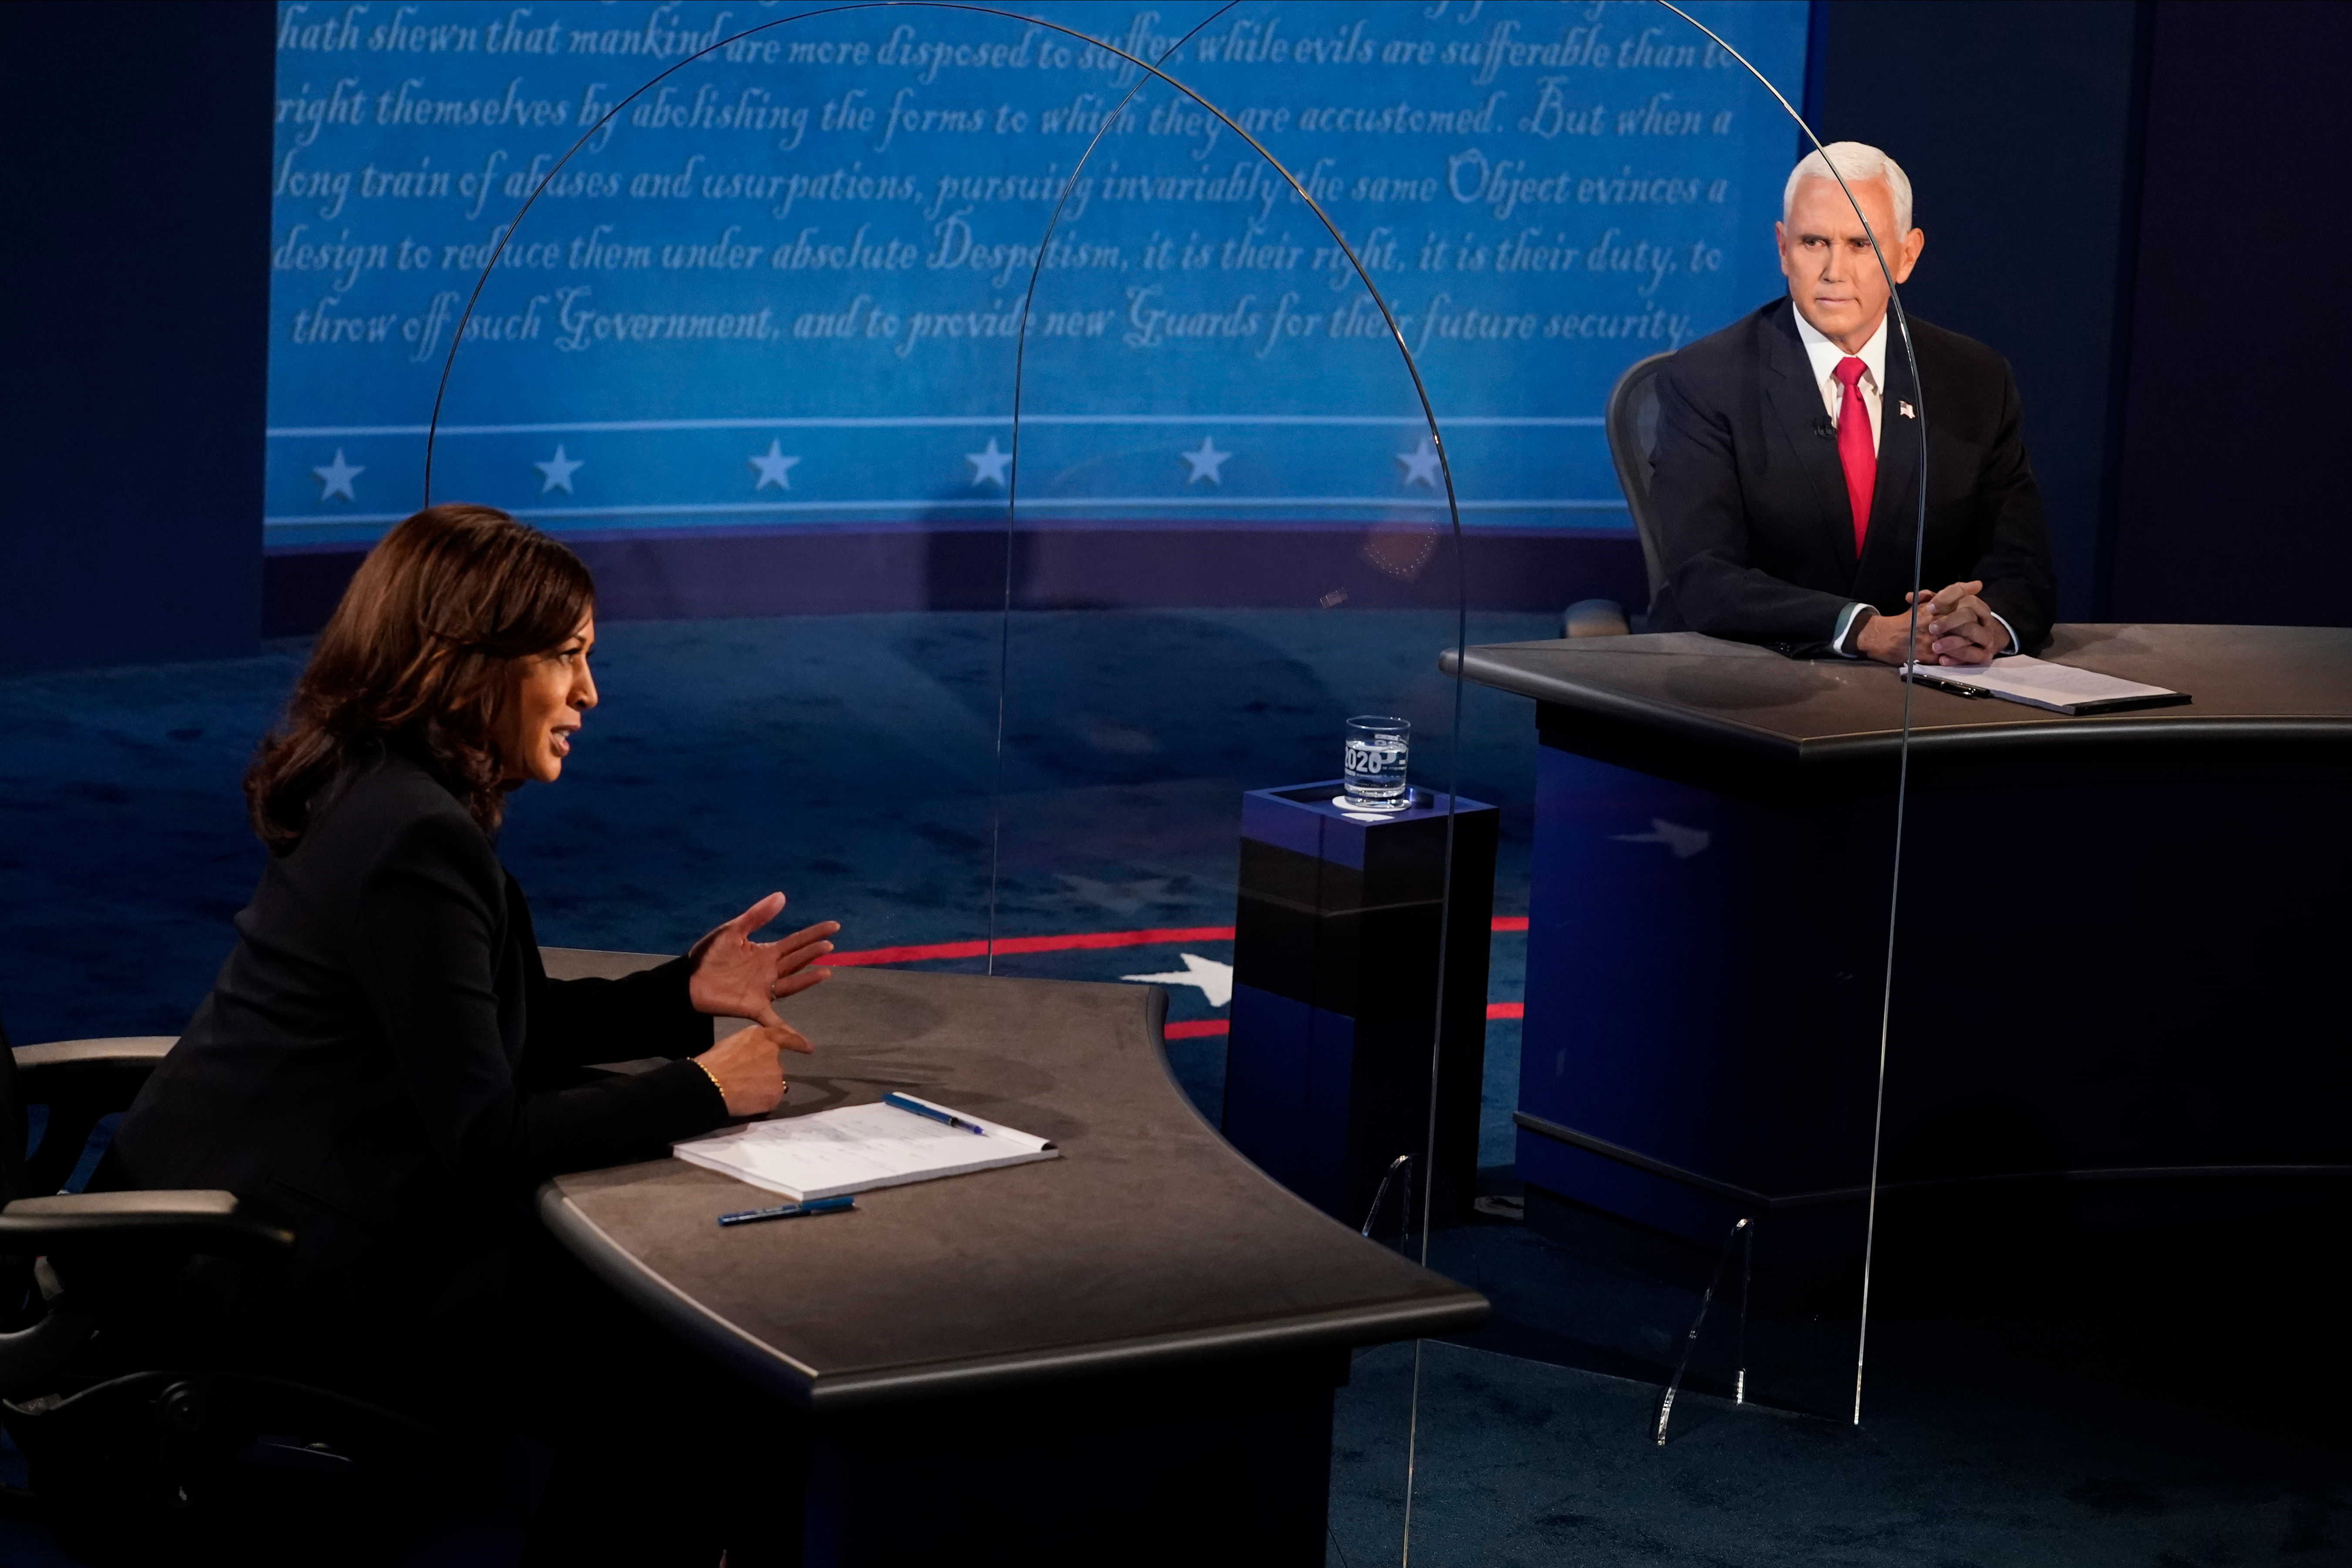 Democratic vice presidential nominee Sen. Kamala Harris (D-CA) and U.S. Vice President Mike Pence participate in the vice presidential debate on Oct. 7, 2020 in Salt Lake City.